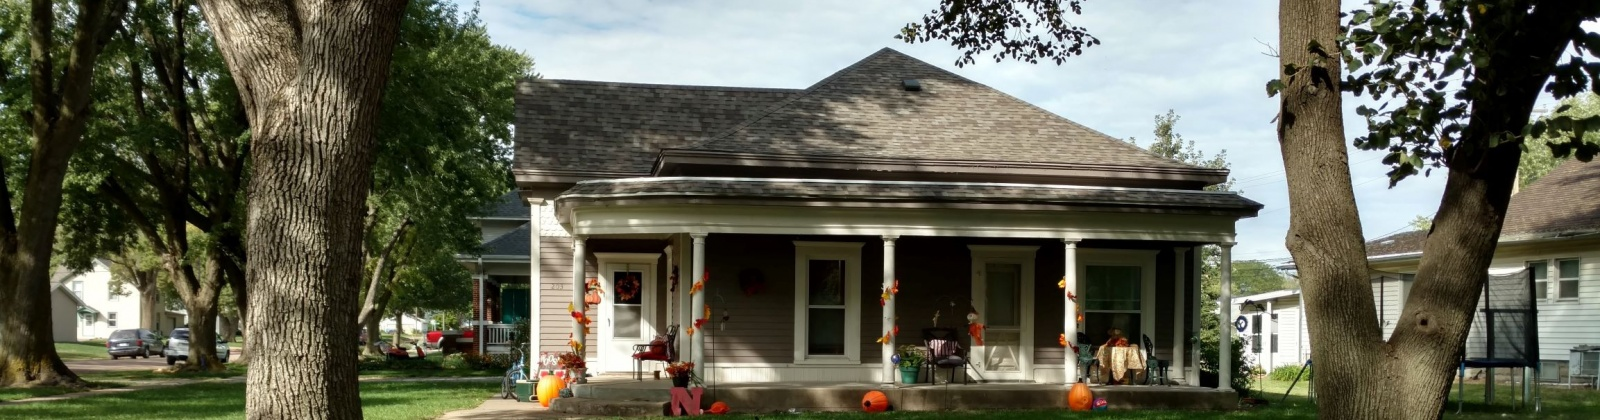 203 N Madison Ave,Plymouth,NE,68424,3 Bedrooms Bedrooms,1 BathroomBathrooms,House,203 N Madison Ave,1004